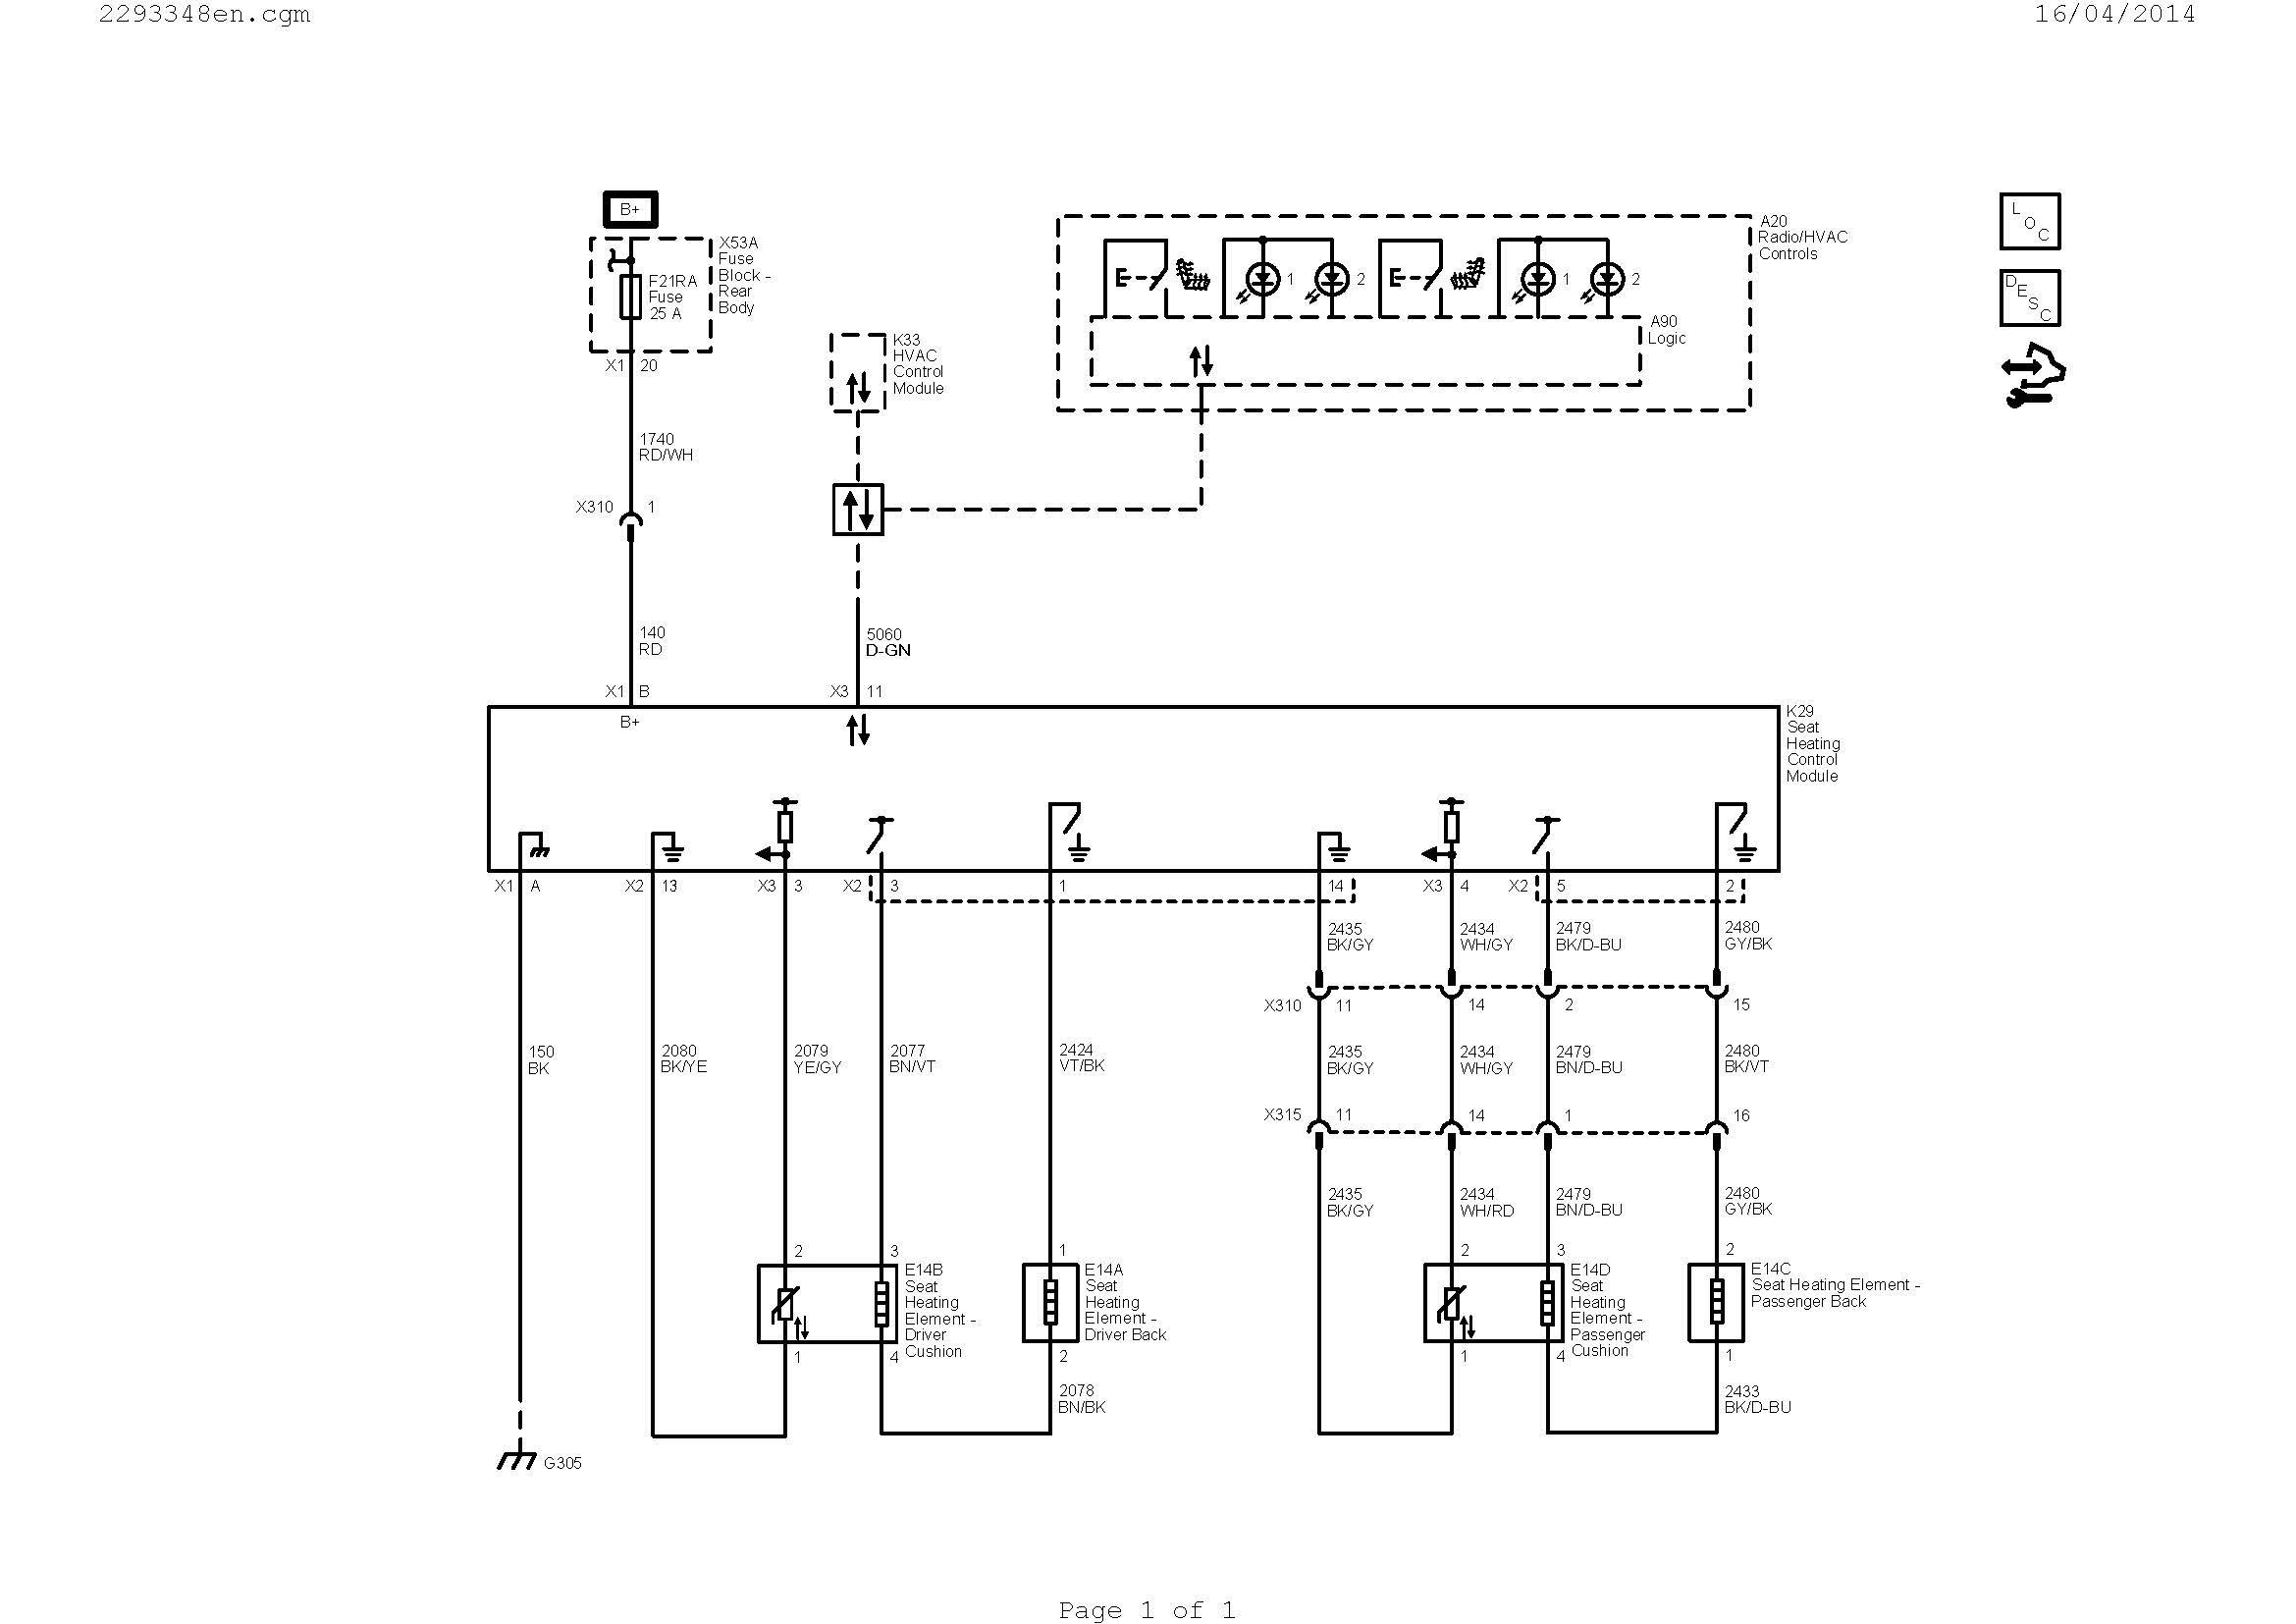 pittsburgh electric hoist wiring diagram Collection-hvac wiring diagram Collection Wiring A Ac Thermostat Diagram New Wiring Diagram Ac Valid Hvac DOWNLOAD Wiring Diagram 19-r